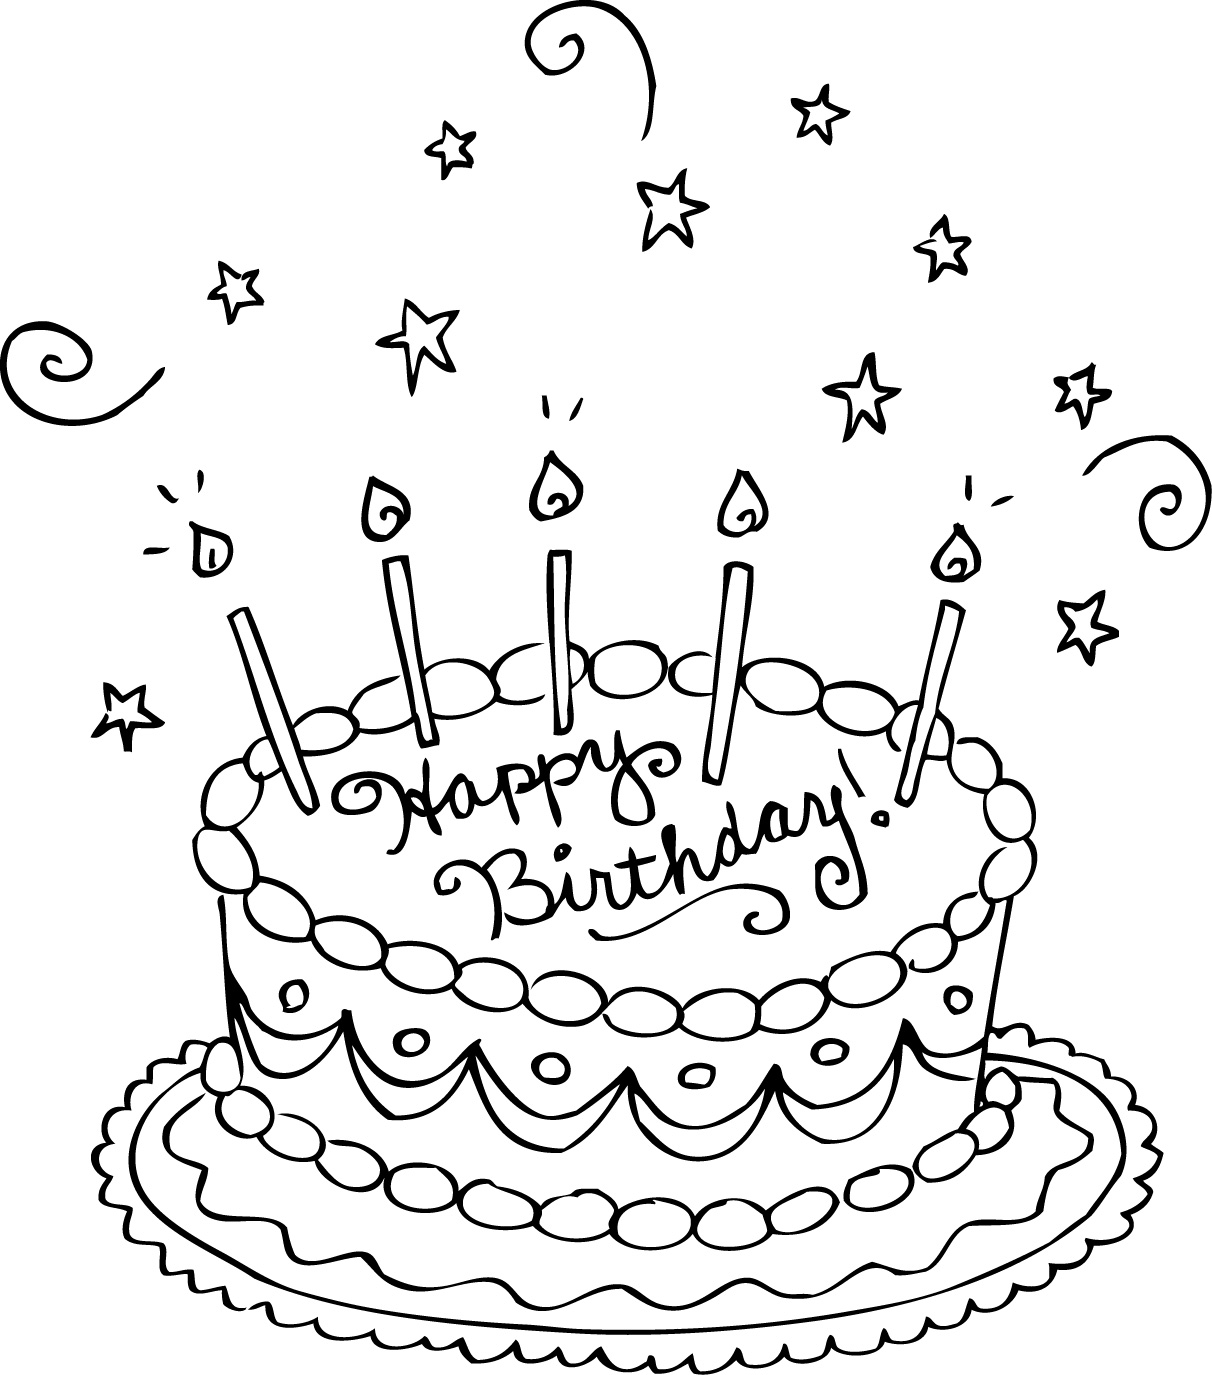 Coloring pages birthday cake - Coloring Page Birthday Cake